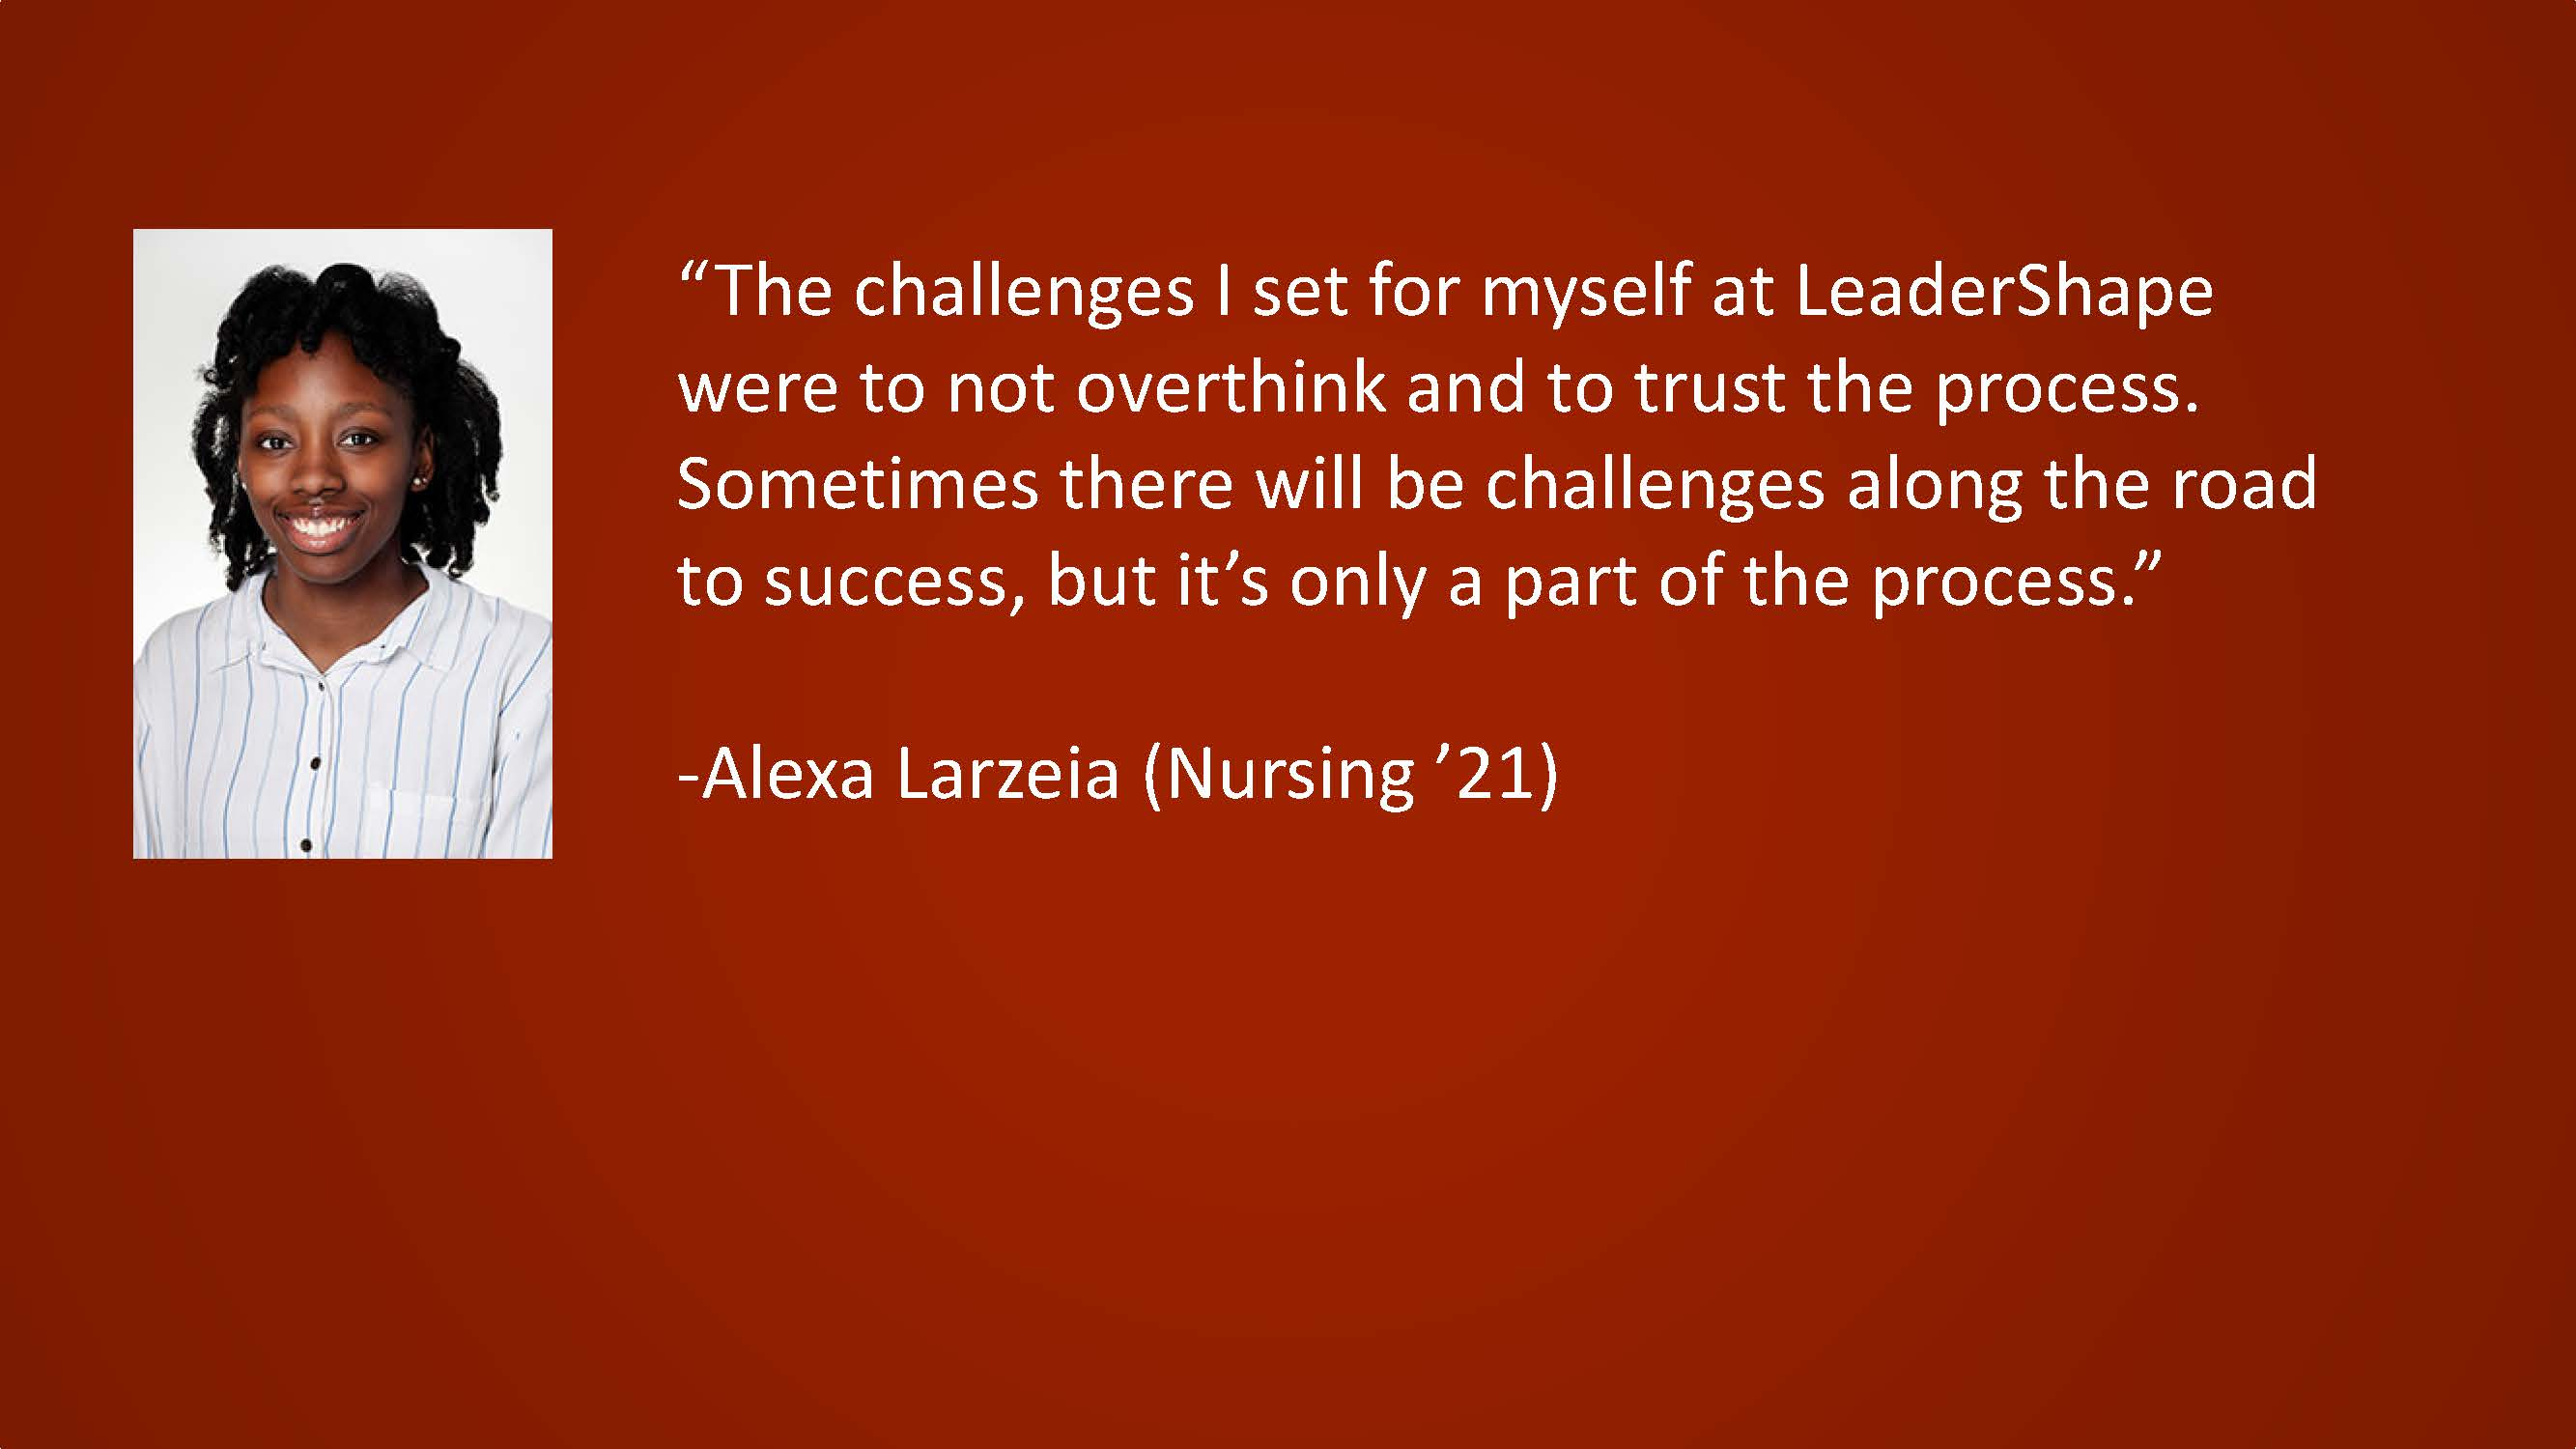 The challenges I set for myself at LeaderShape were to not overthink and to trust the process. Sometimes there will be challenges along the road to success, but it's only a part of the process. — Alexa Larzeia, (Nursing '21)